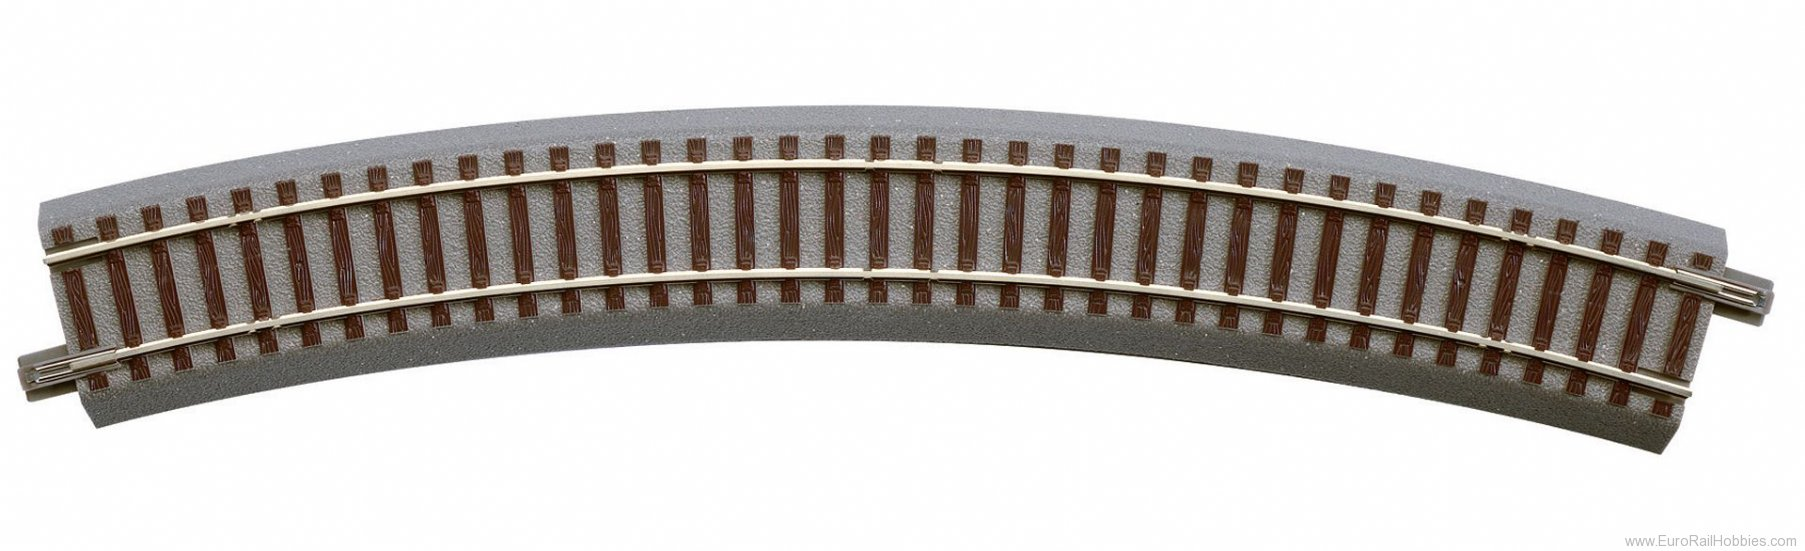 Roco 61124 geoLINE Curved Track R4